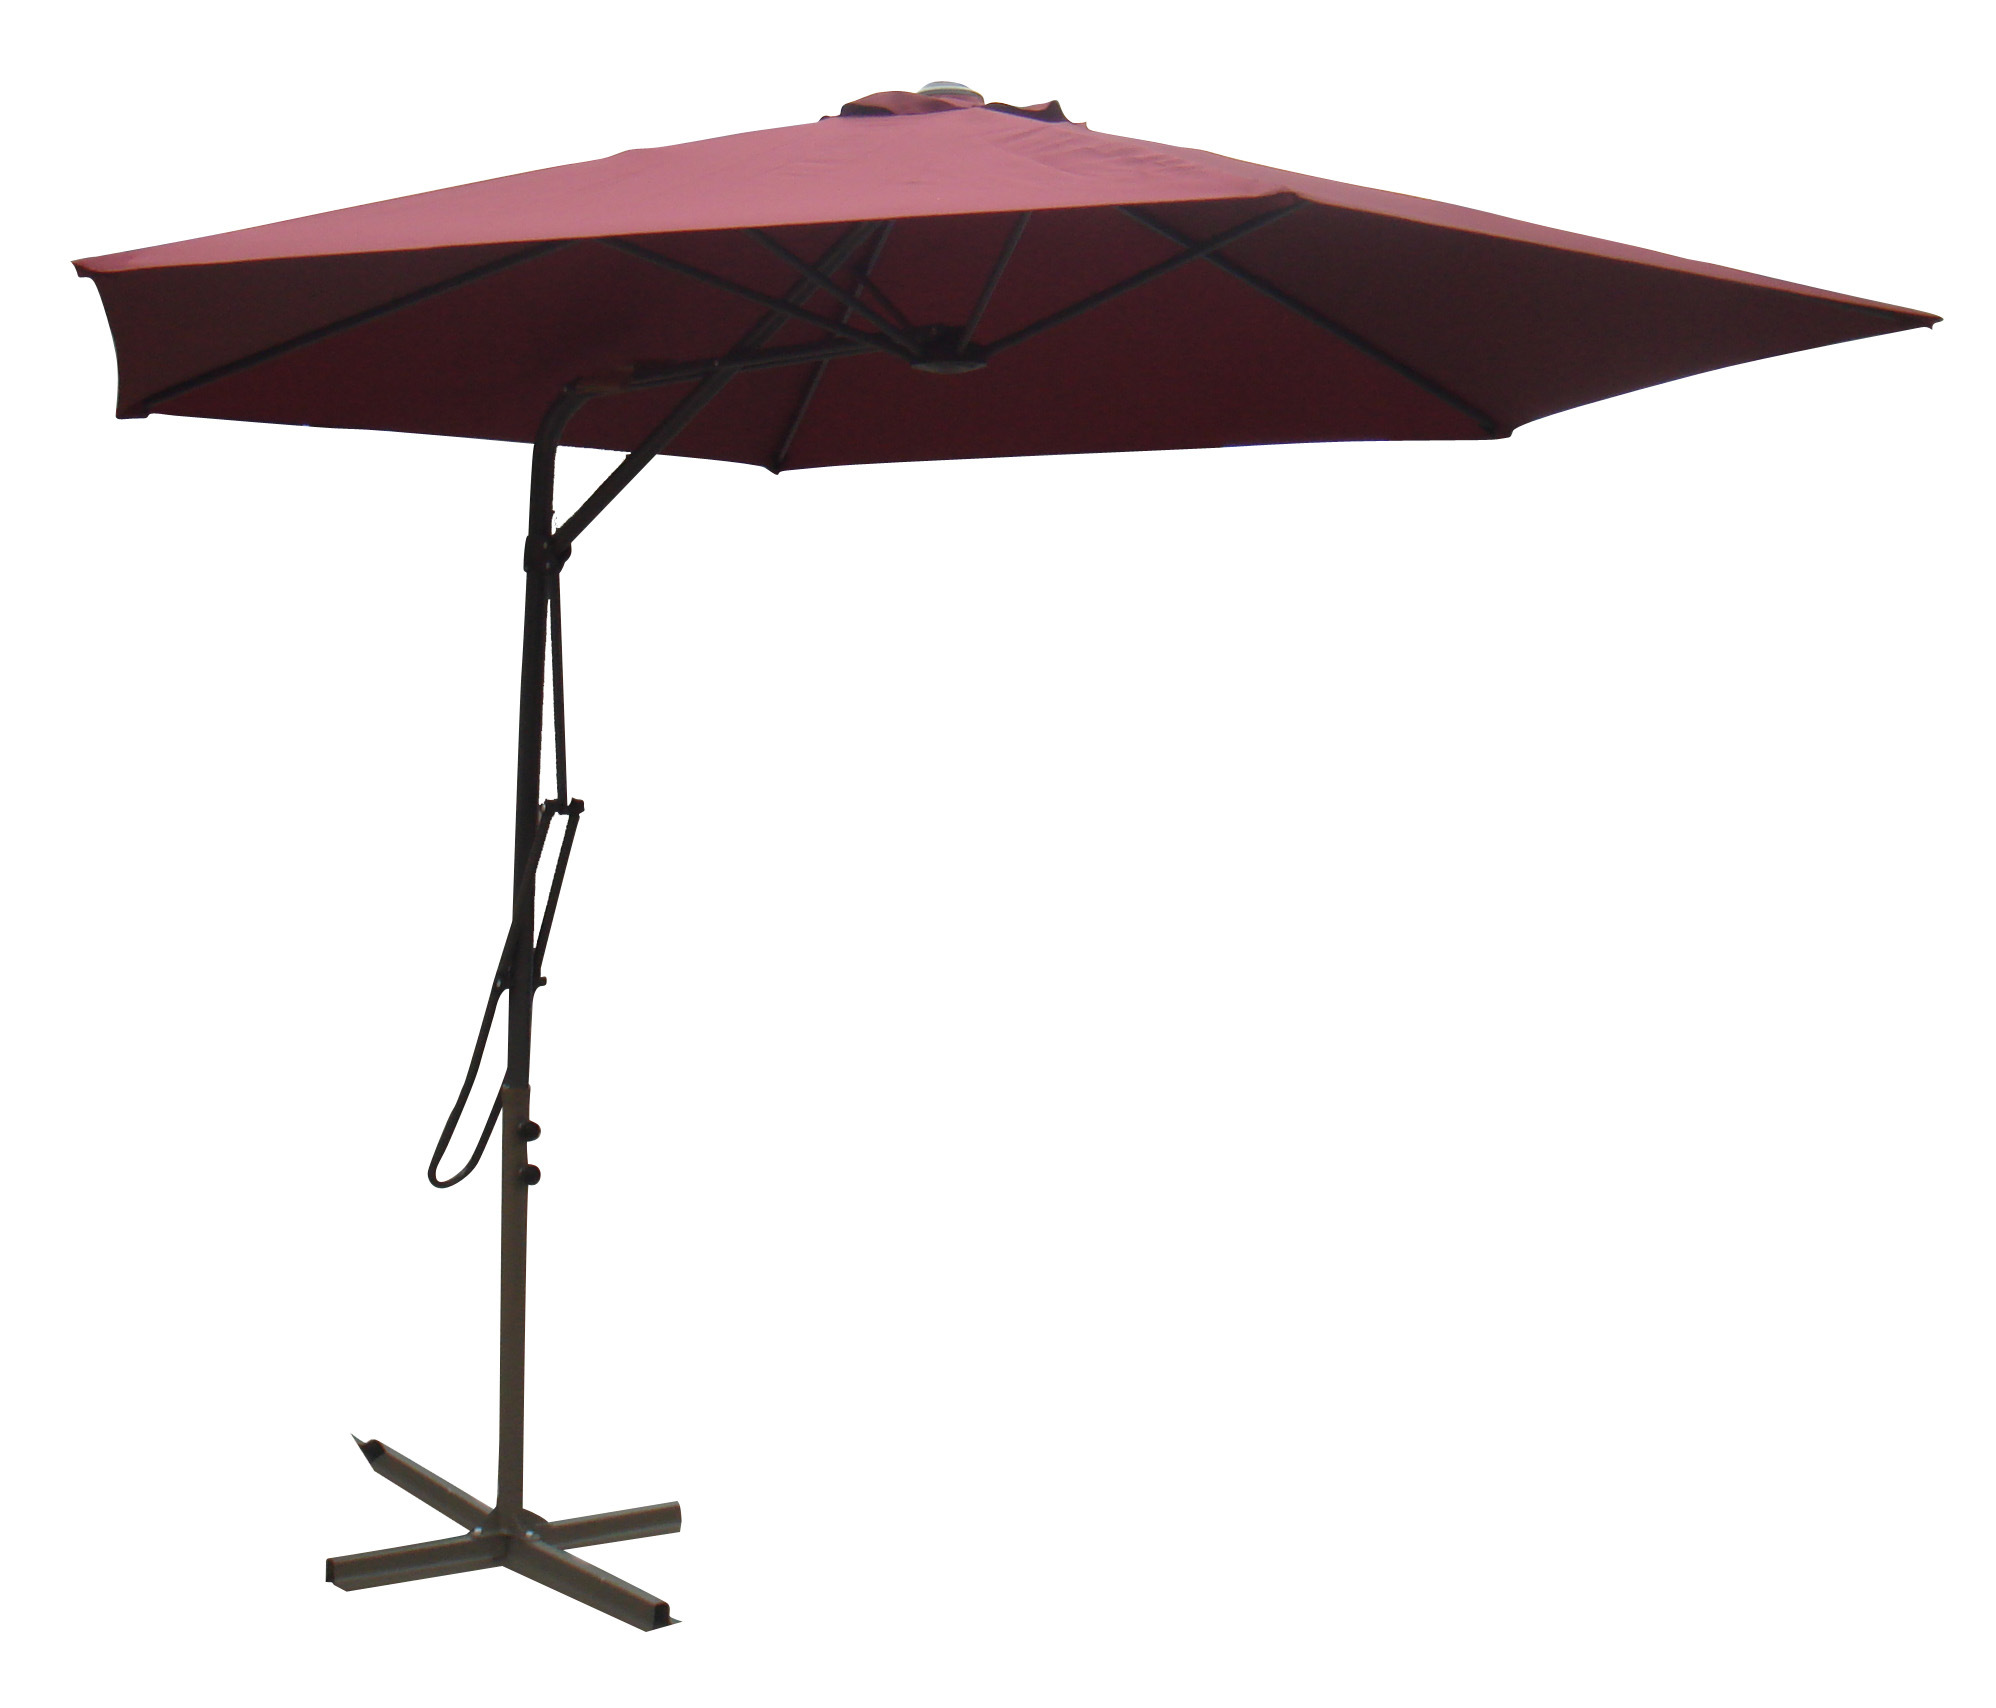 patio umbrellas for sale patio umbrellas market umbrellas